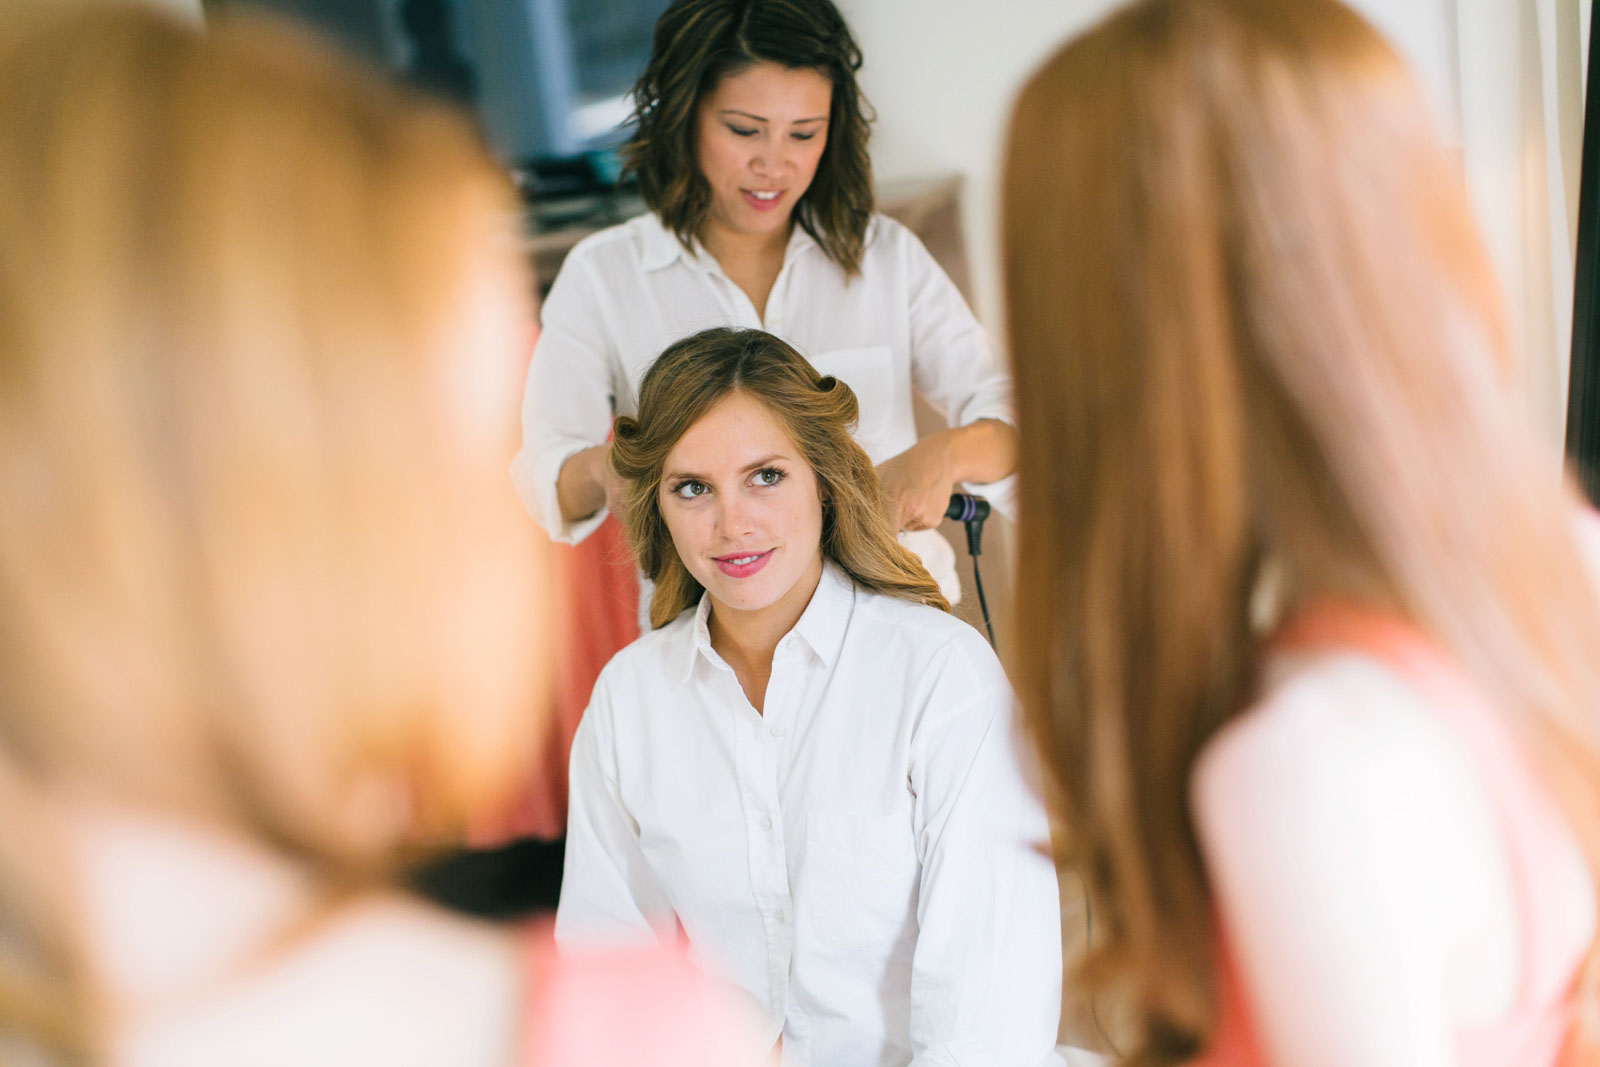 bridesmaid getting her hair done while getting ready in bridal suite with lots of natural light